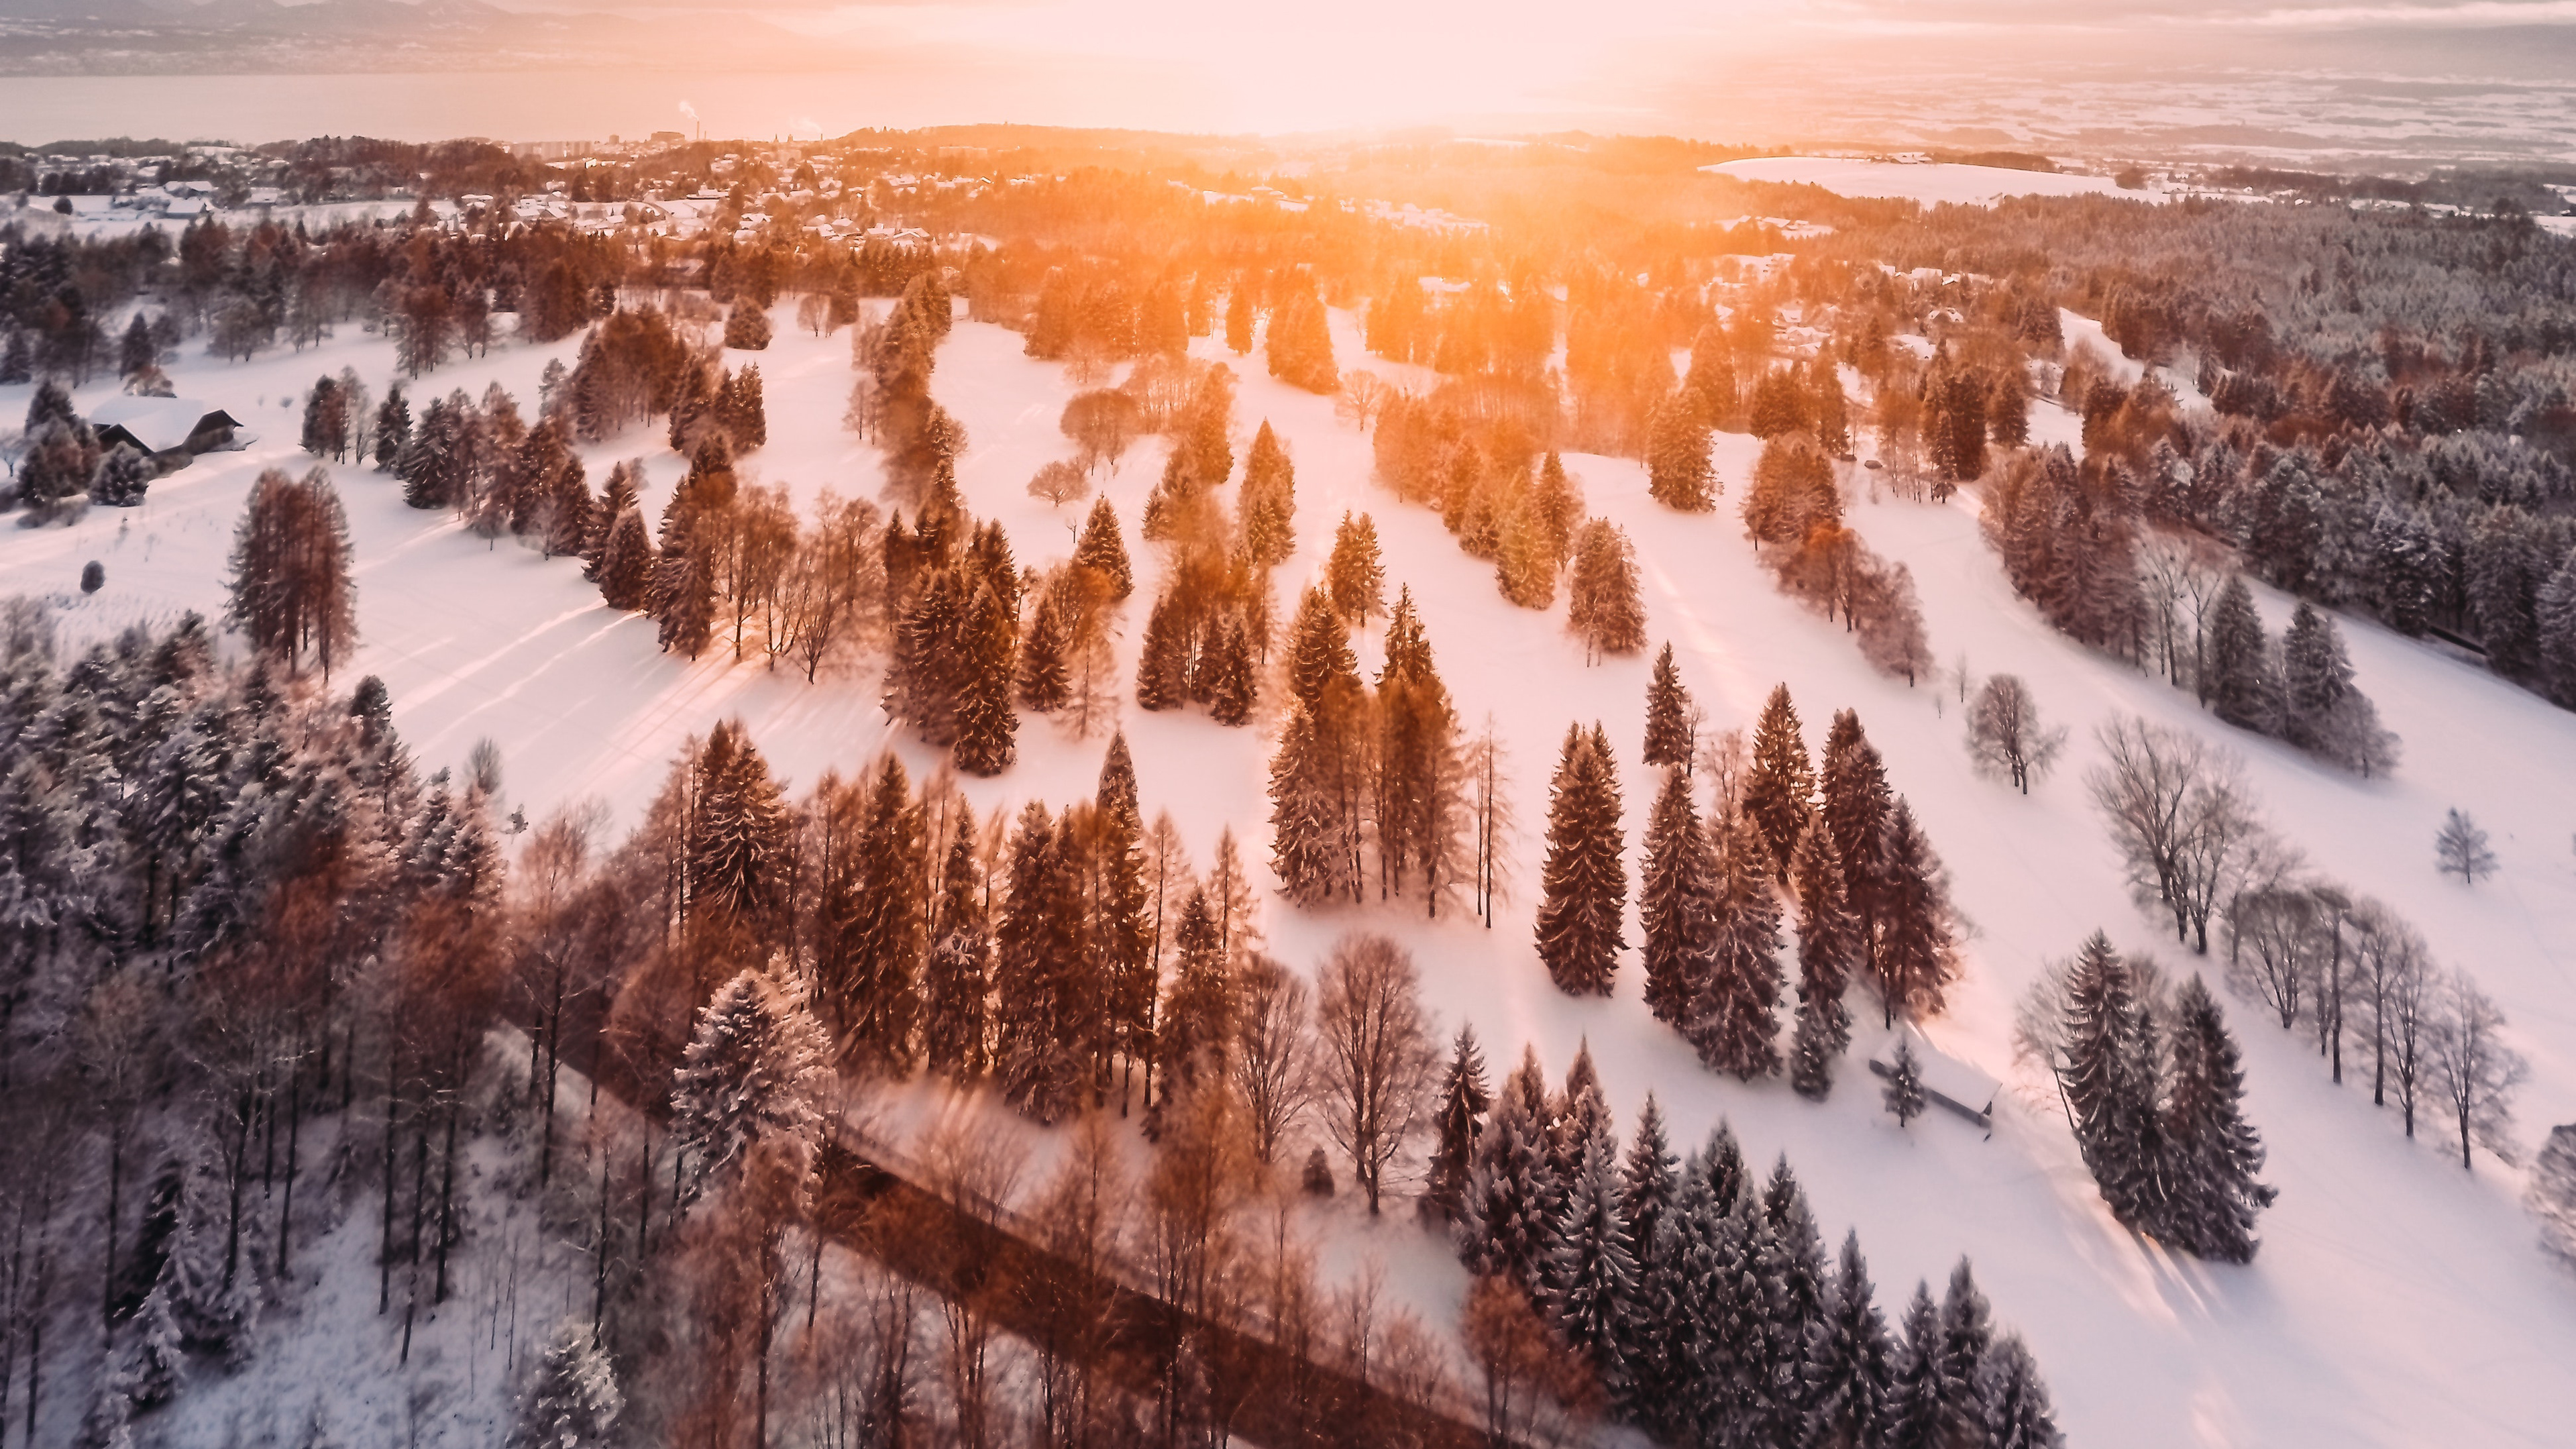 cold forest pine trees morning 4k 1551644053 - Cold Forest Pine Trees Morning 4k - trees wallpapers, sunbeam wallpapers, snow wallpapers, pine wallpapers, nature wallpapers, morning wallpapers, hd-wallpapers, forest wallpapers, 4k-wallpapers